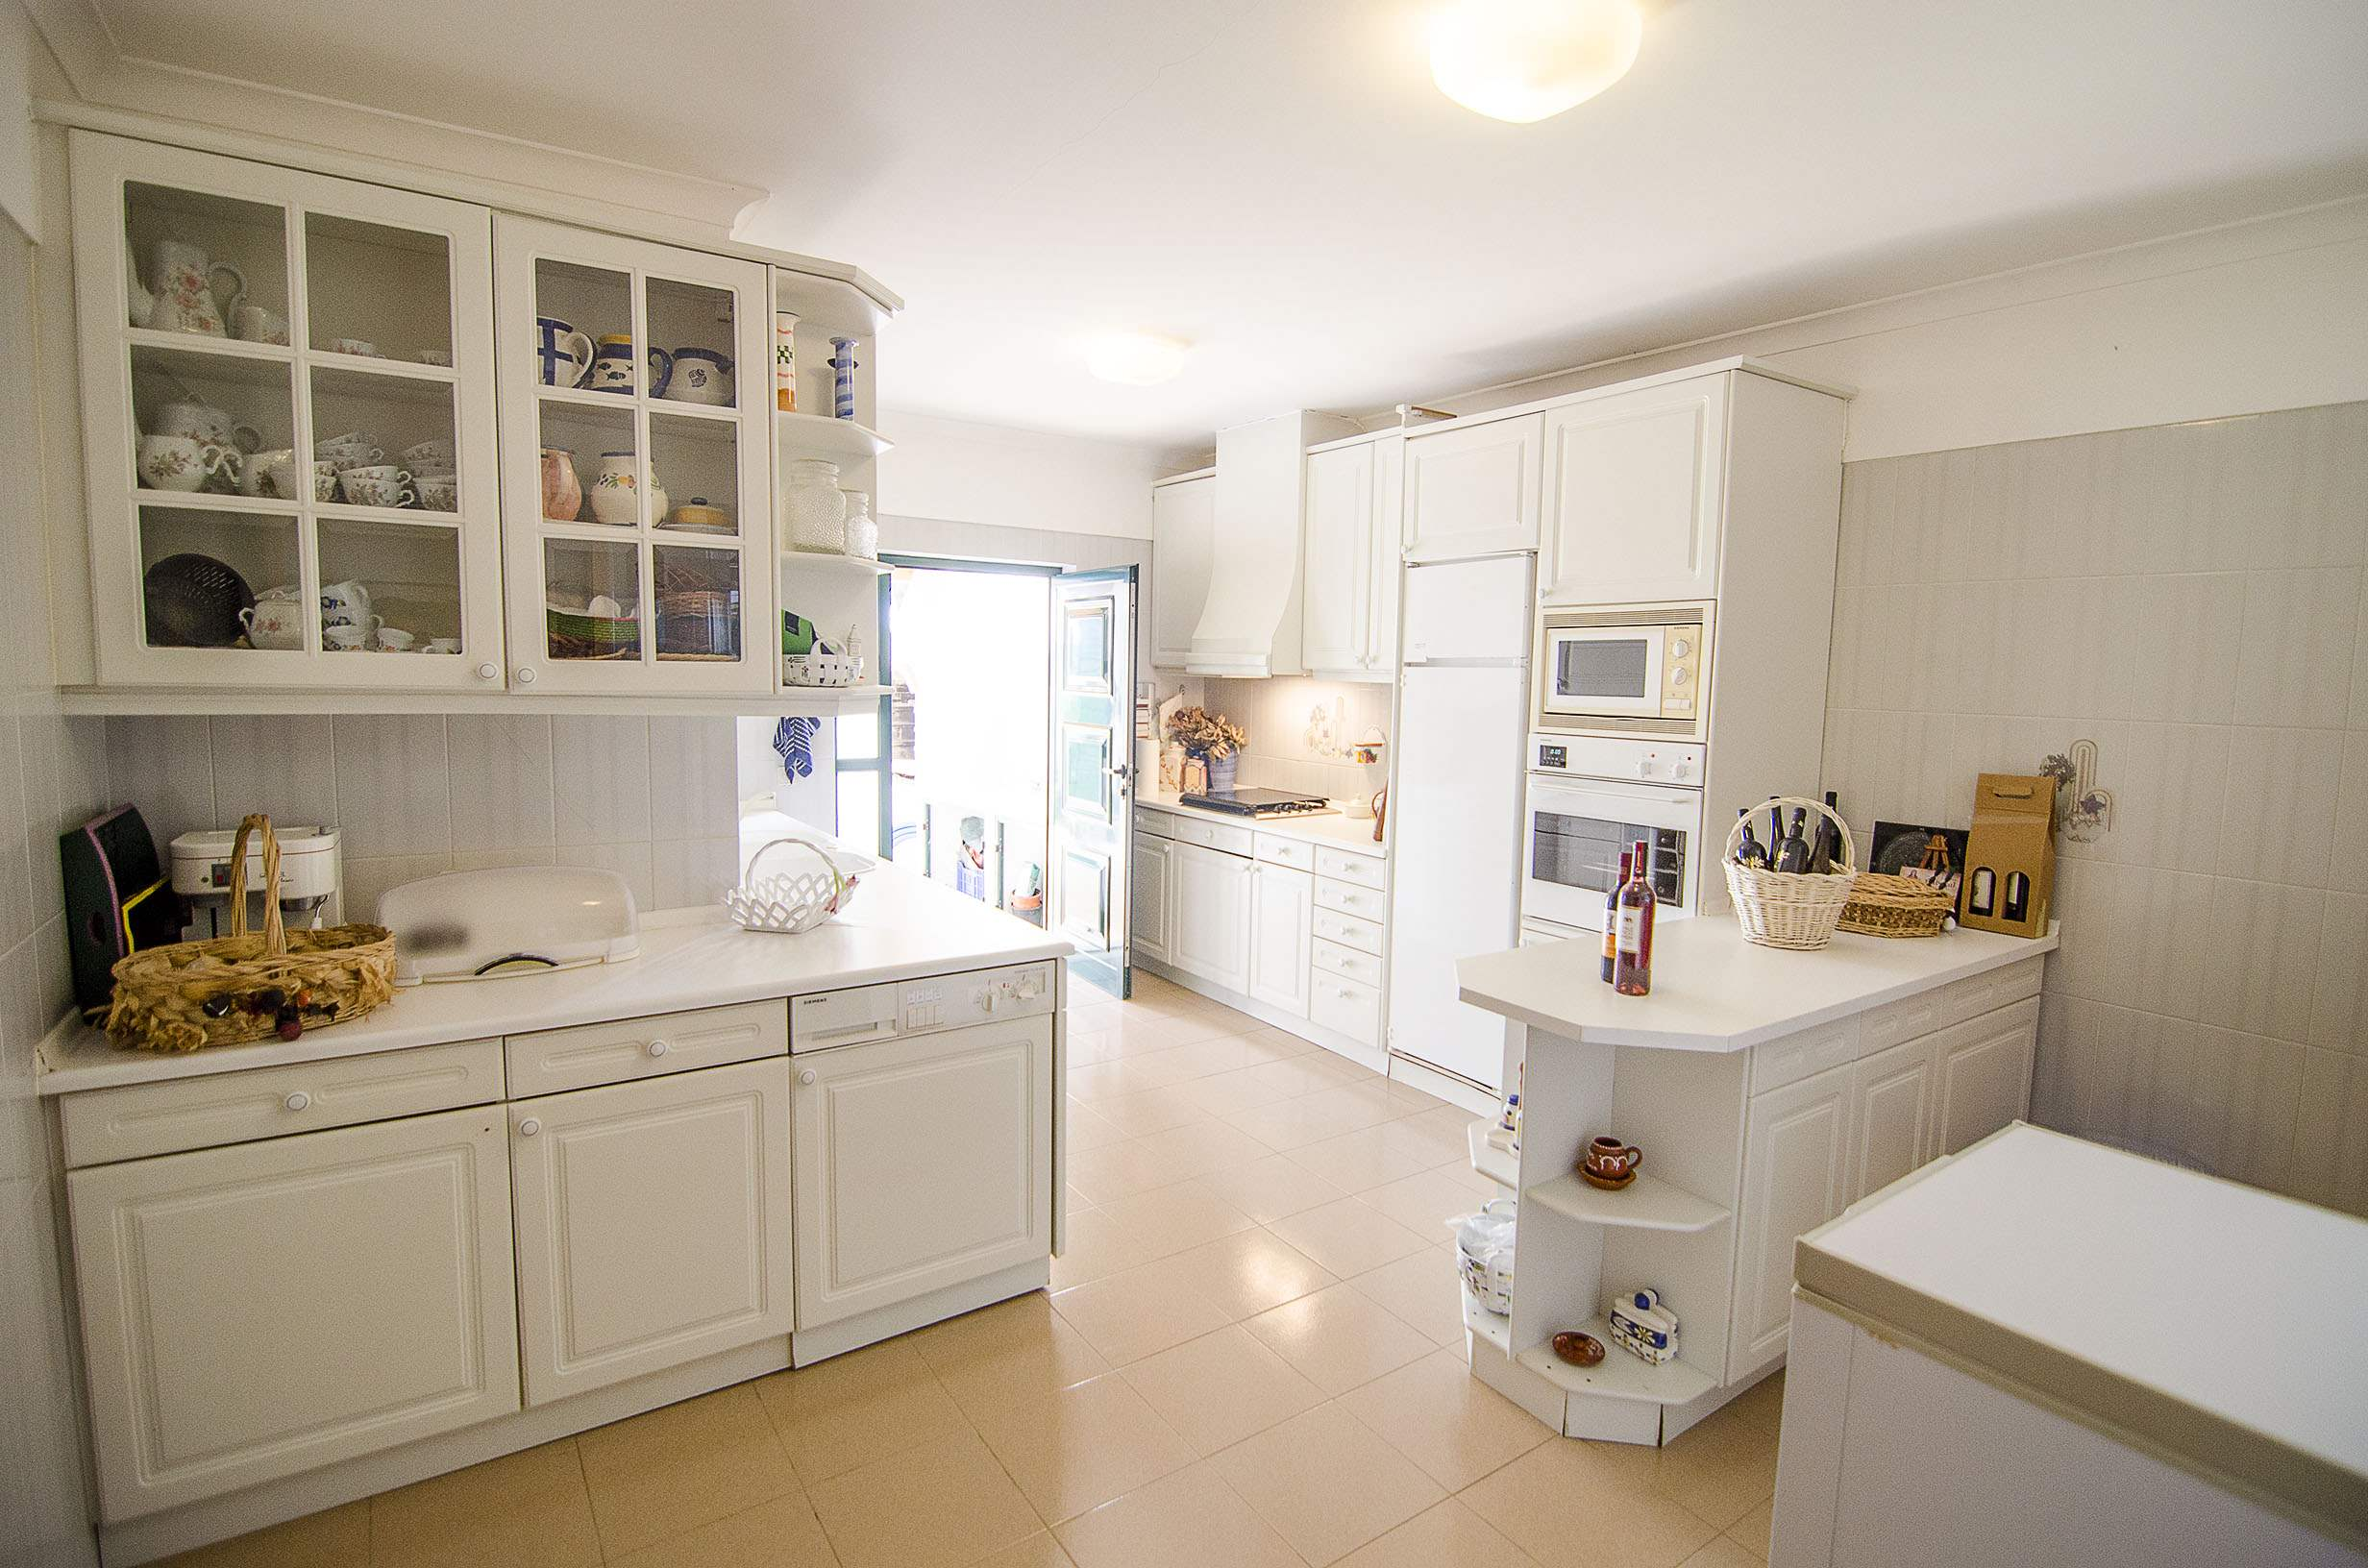 Villa Clara, 4 bedroom villa in Vilamoura Area, Algarve Photo #7